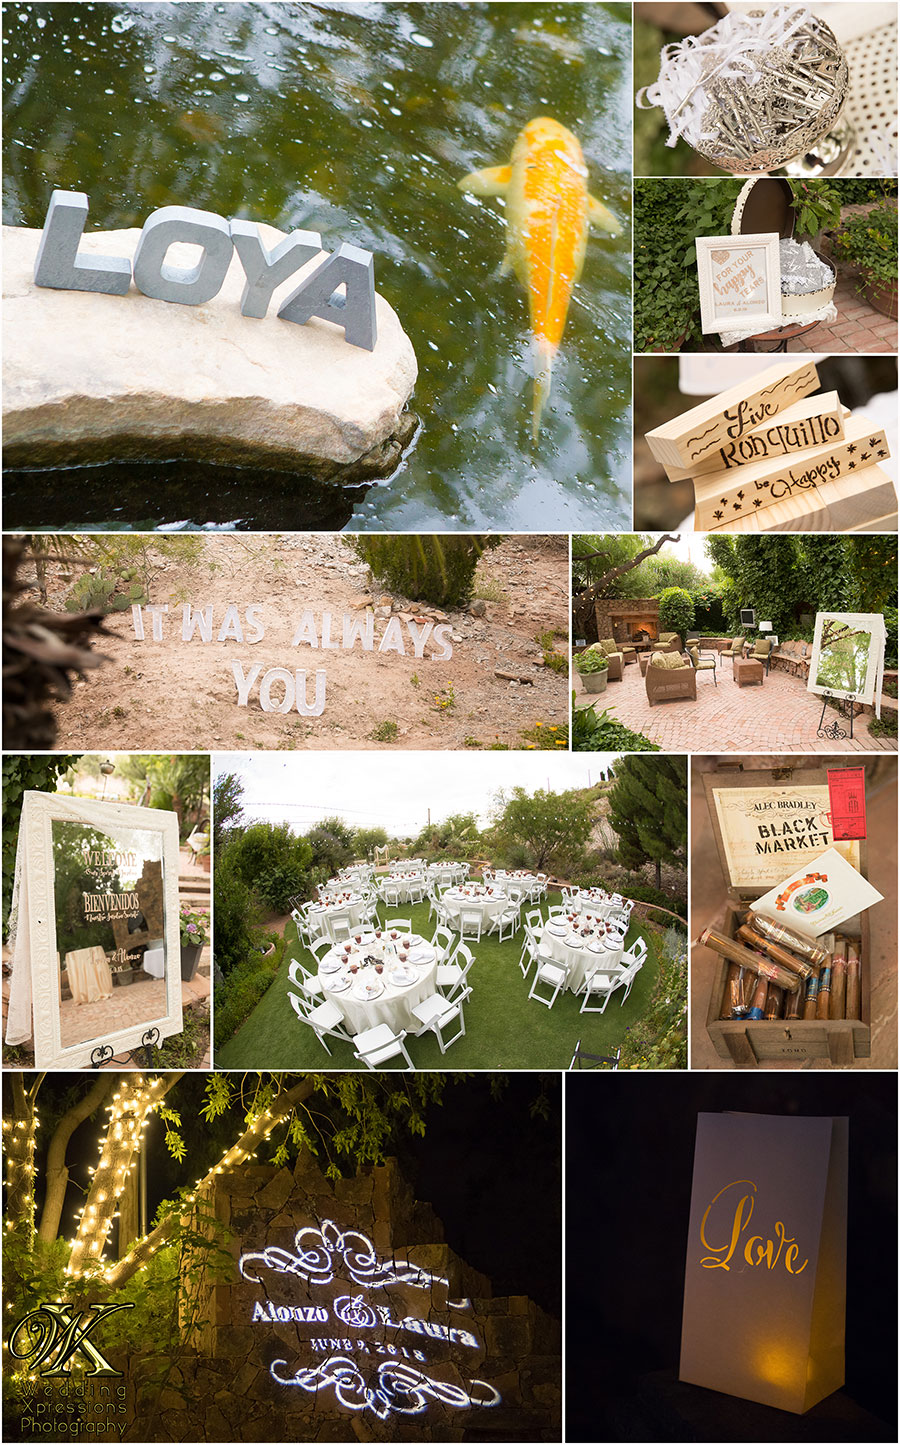 Wedding Xpressions at The Secret Garden in El Paso